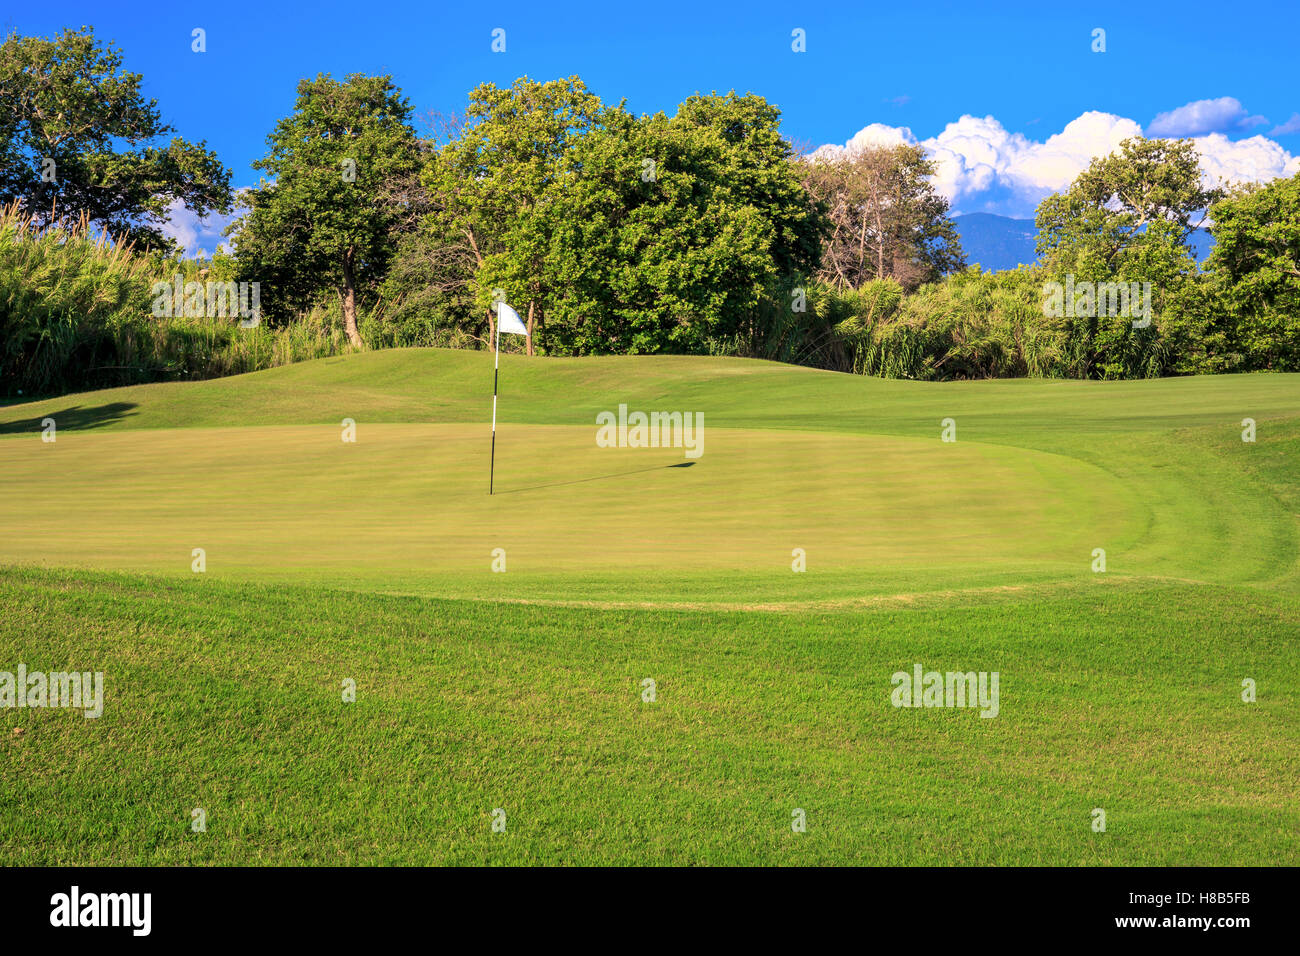 green golf course in a Greek resort, Peloponnese - Stock Image